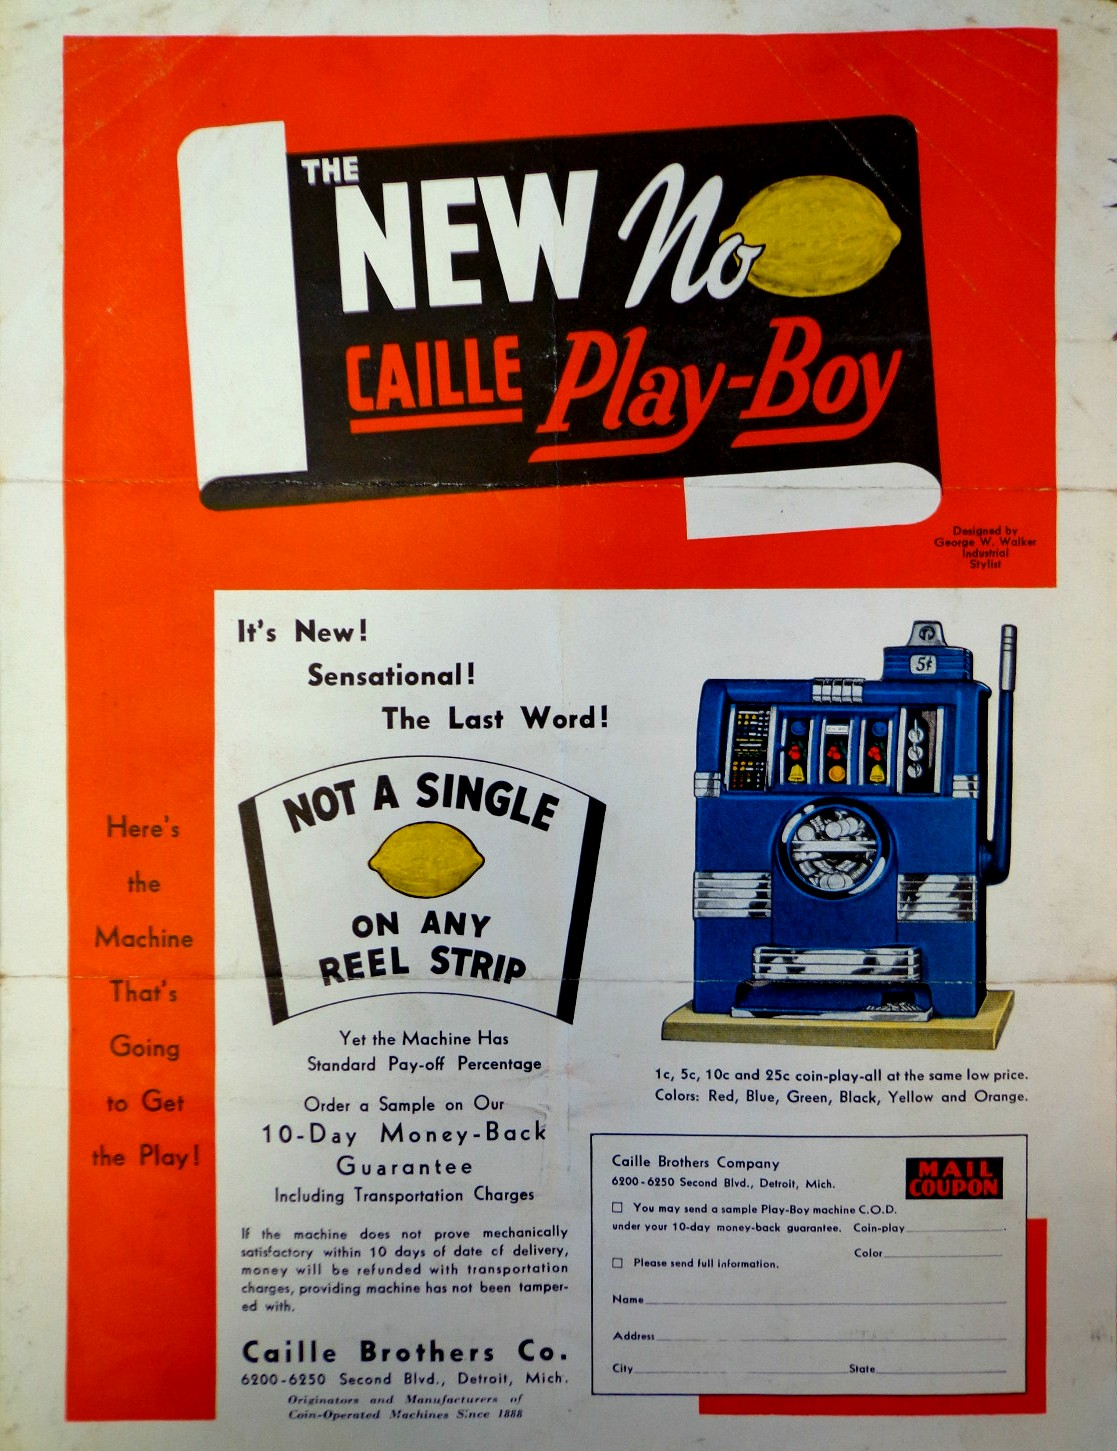 Caille Play Boy Flyer.jpg